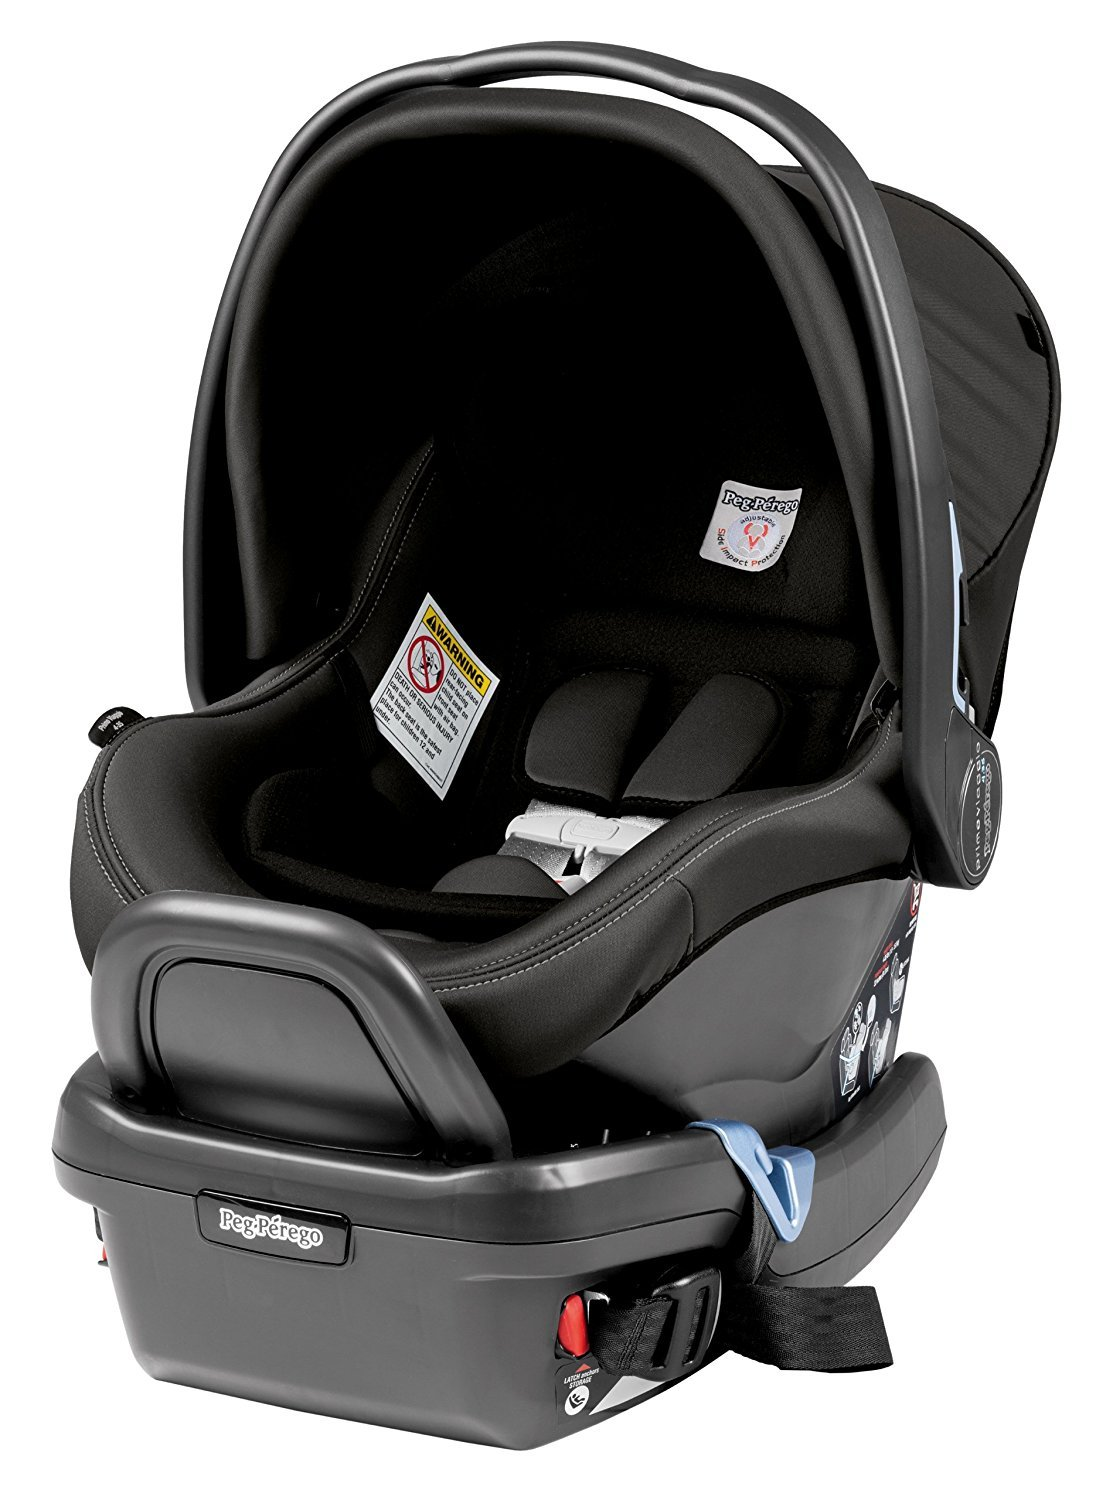 Peg Perego Triplette Piroet Pop-Up Seats and Primo Viaggio 4/35 Infant Car Seat Stroller with Diaper Bag - Atmosphere by Peg Perego (Image #4)